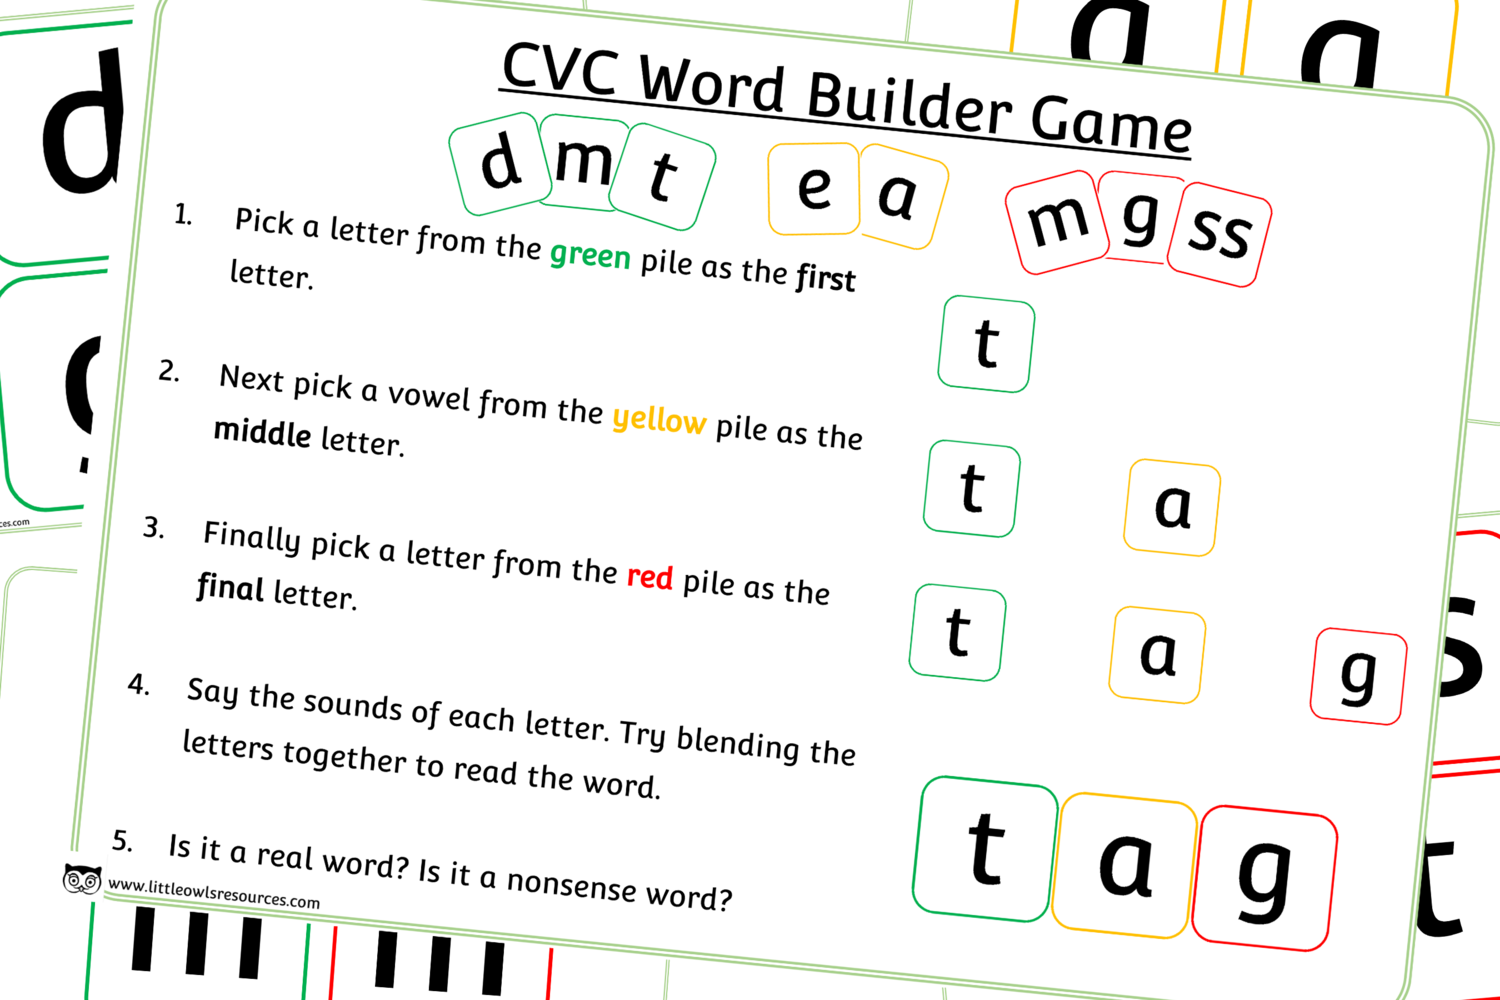 Free Phase 2 Cvc Word Builder Game Early Years Eyfs